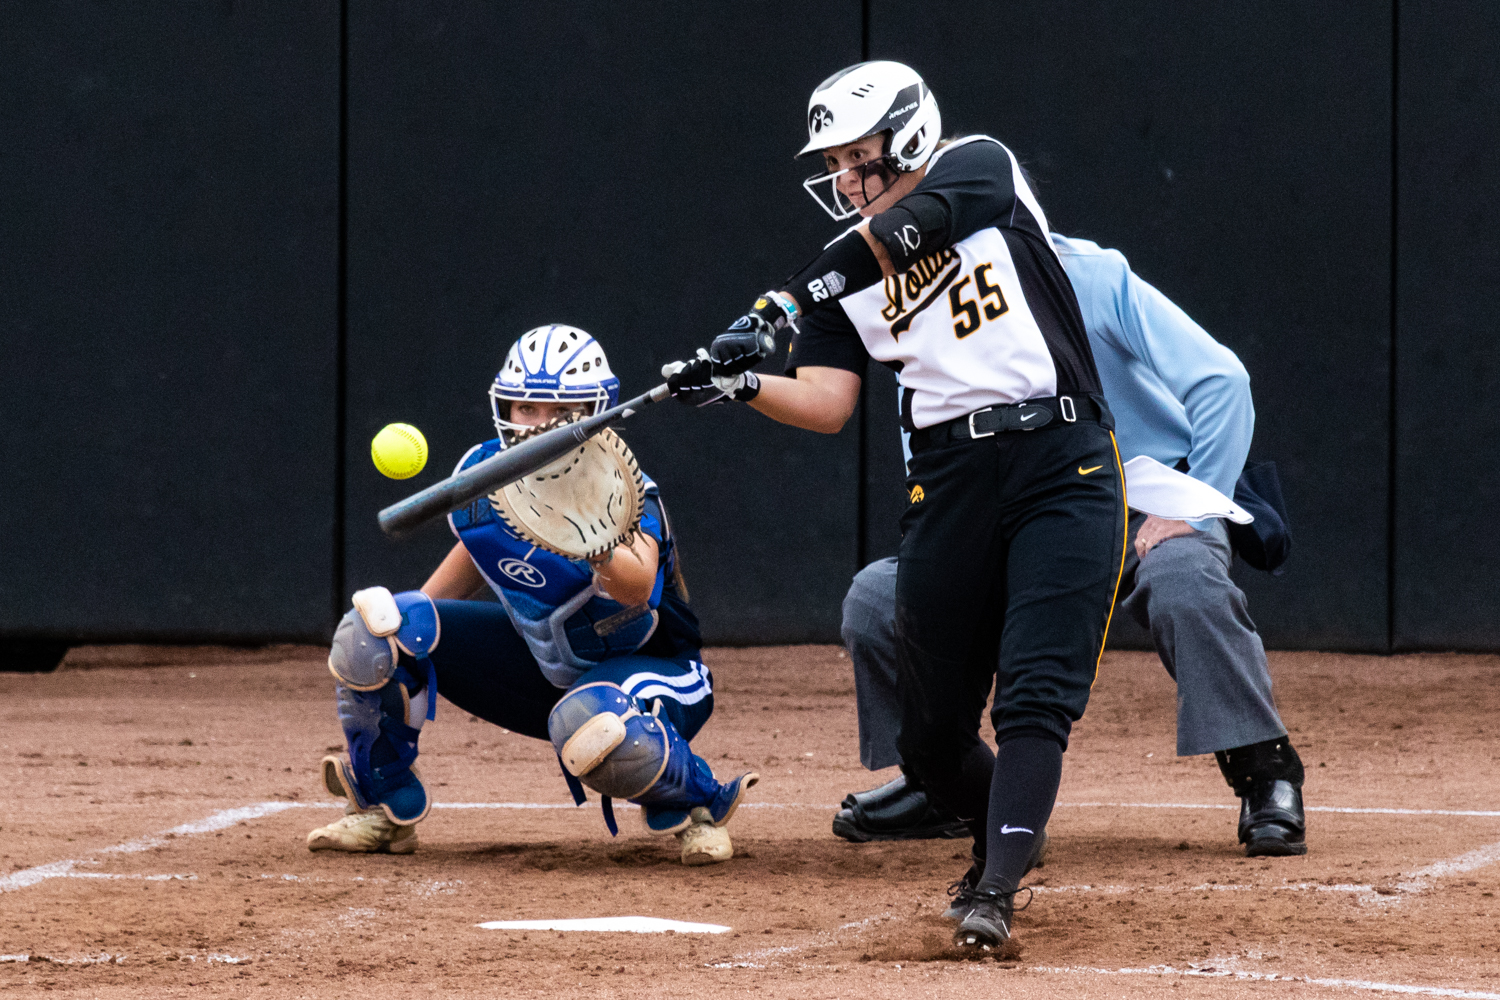 Iowa's Miranda Schulte connects on what would be a double during a softball game against Des Moines Area Community College on Friday, Sep. 21, 2018. The Hawkeyes defeated the Bears 8-1.